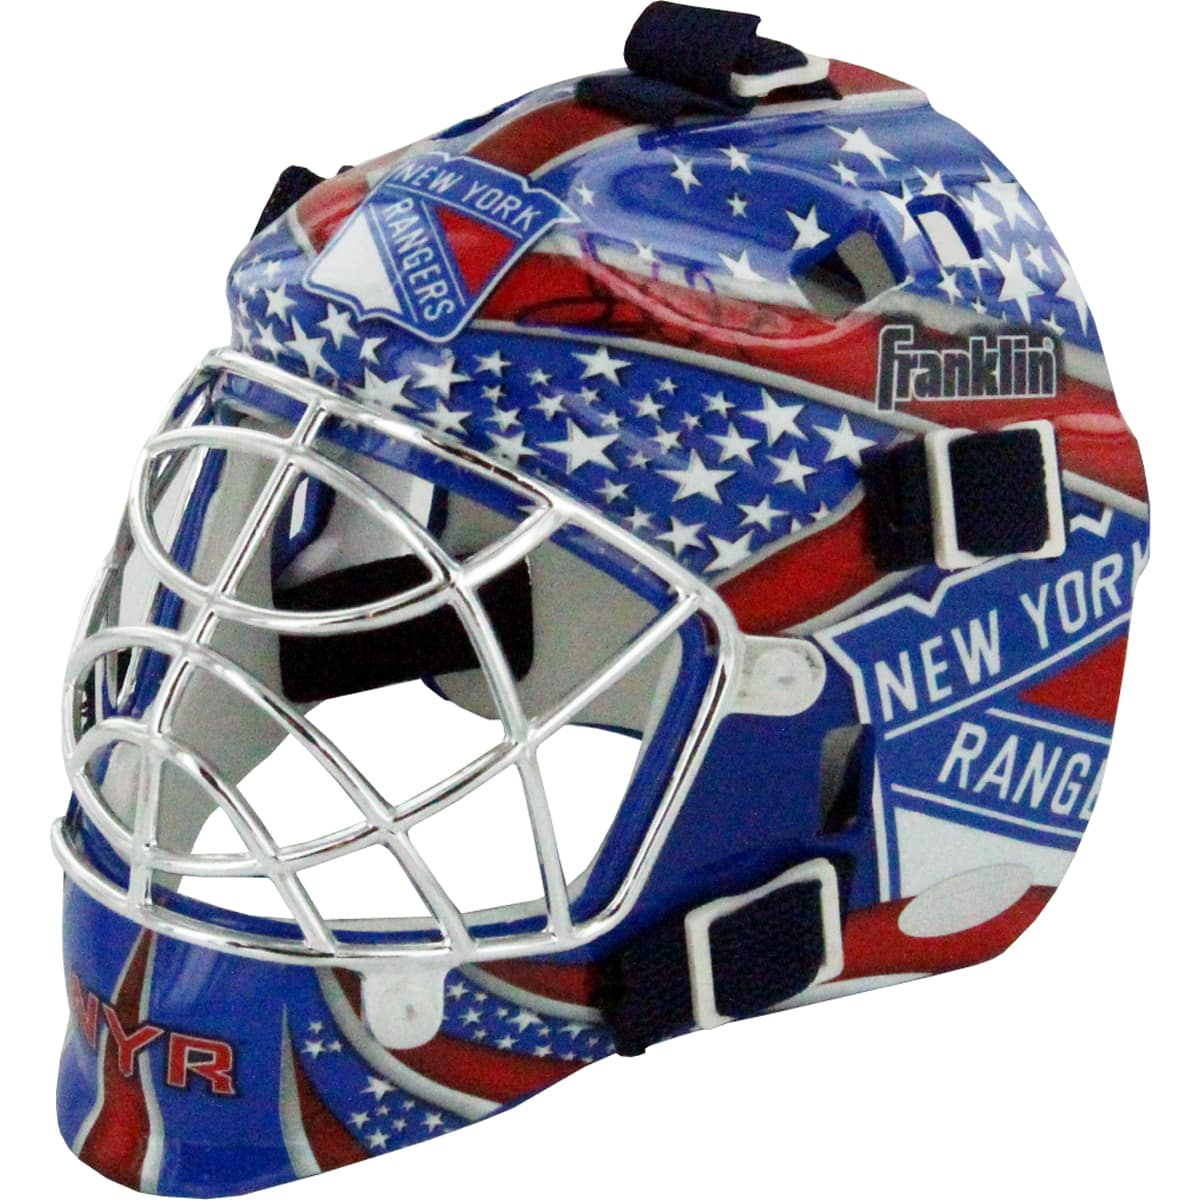 Henrik Lundqvist Blowout Sale Signed Mini Mask 189 99 Was 299